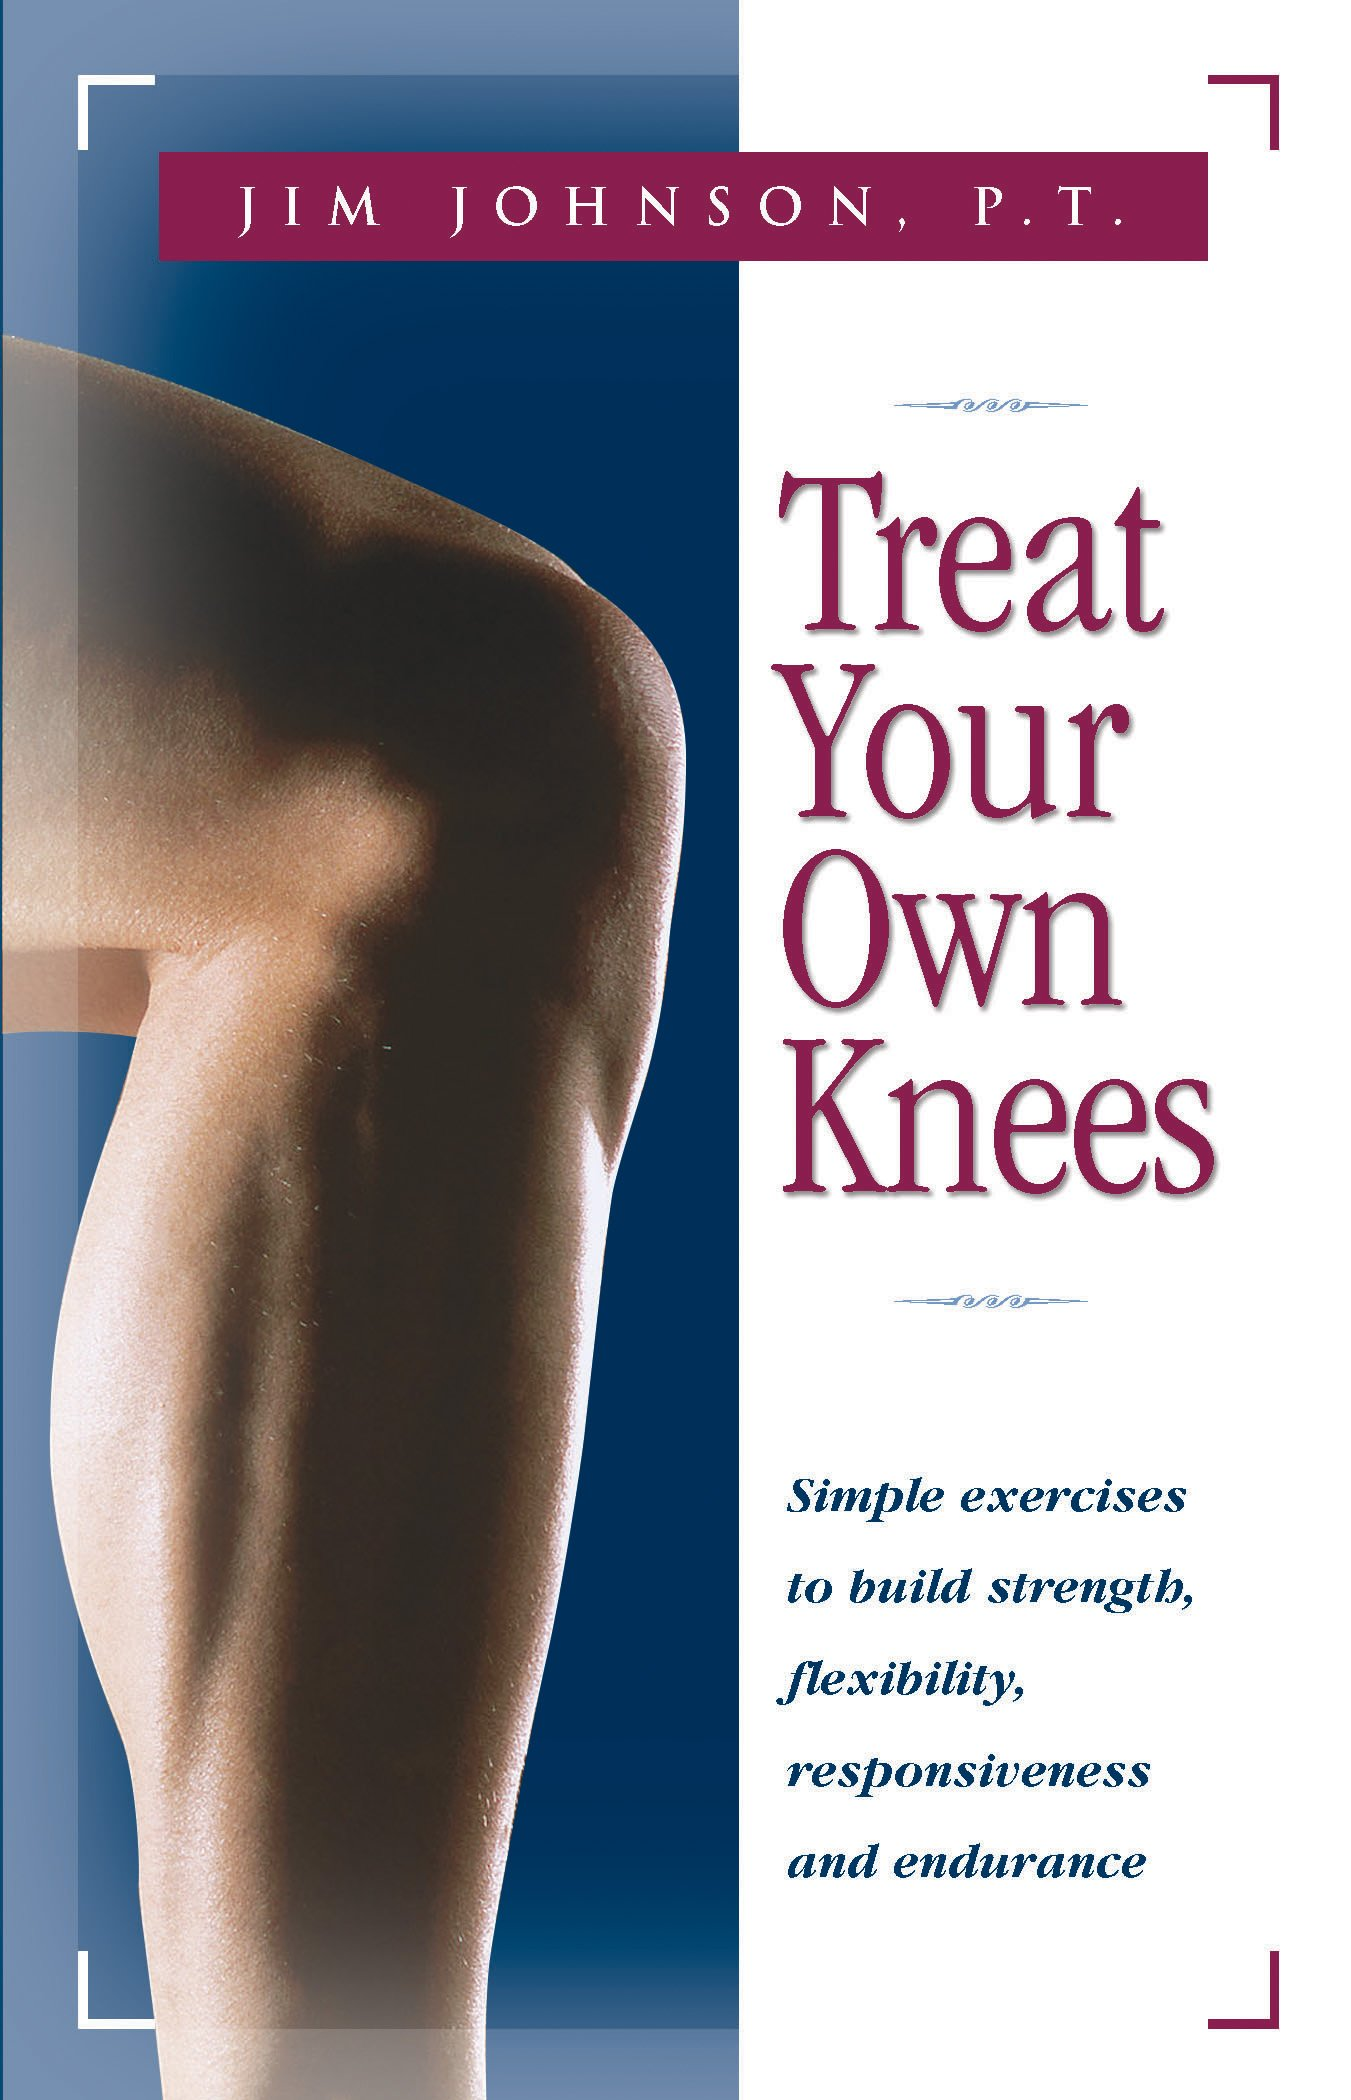 Treat Your Own Knees Responsiveness product image